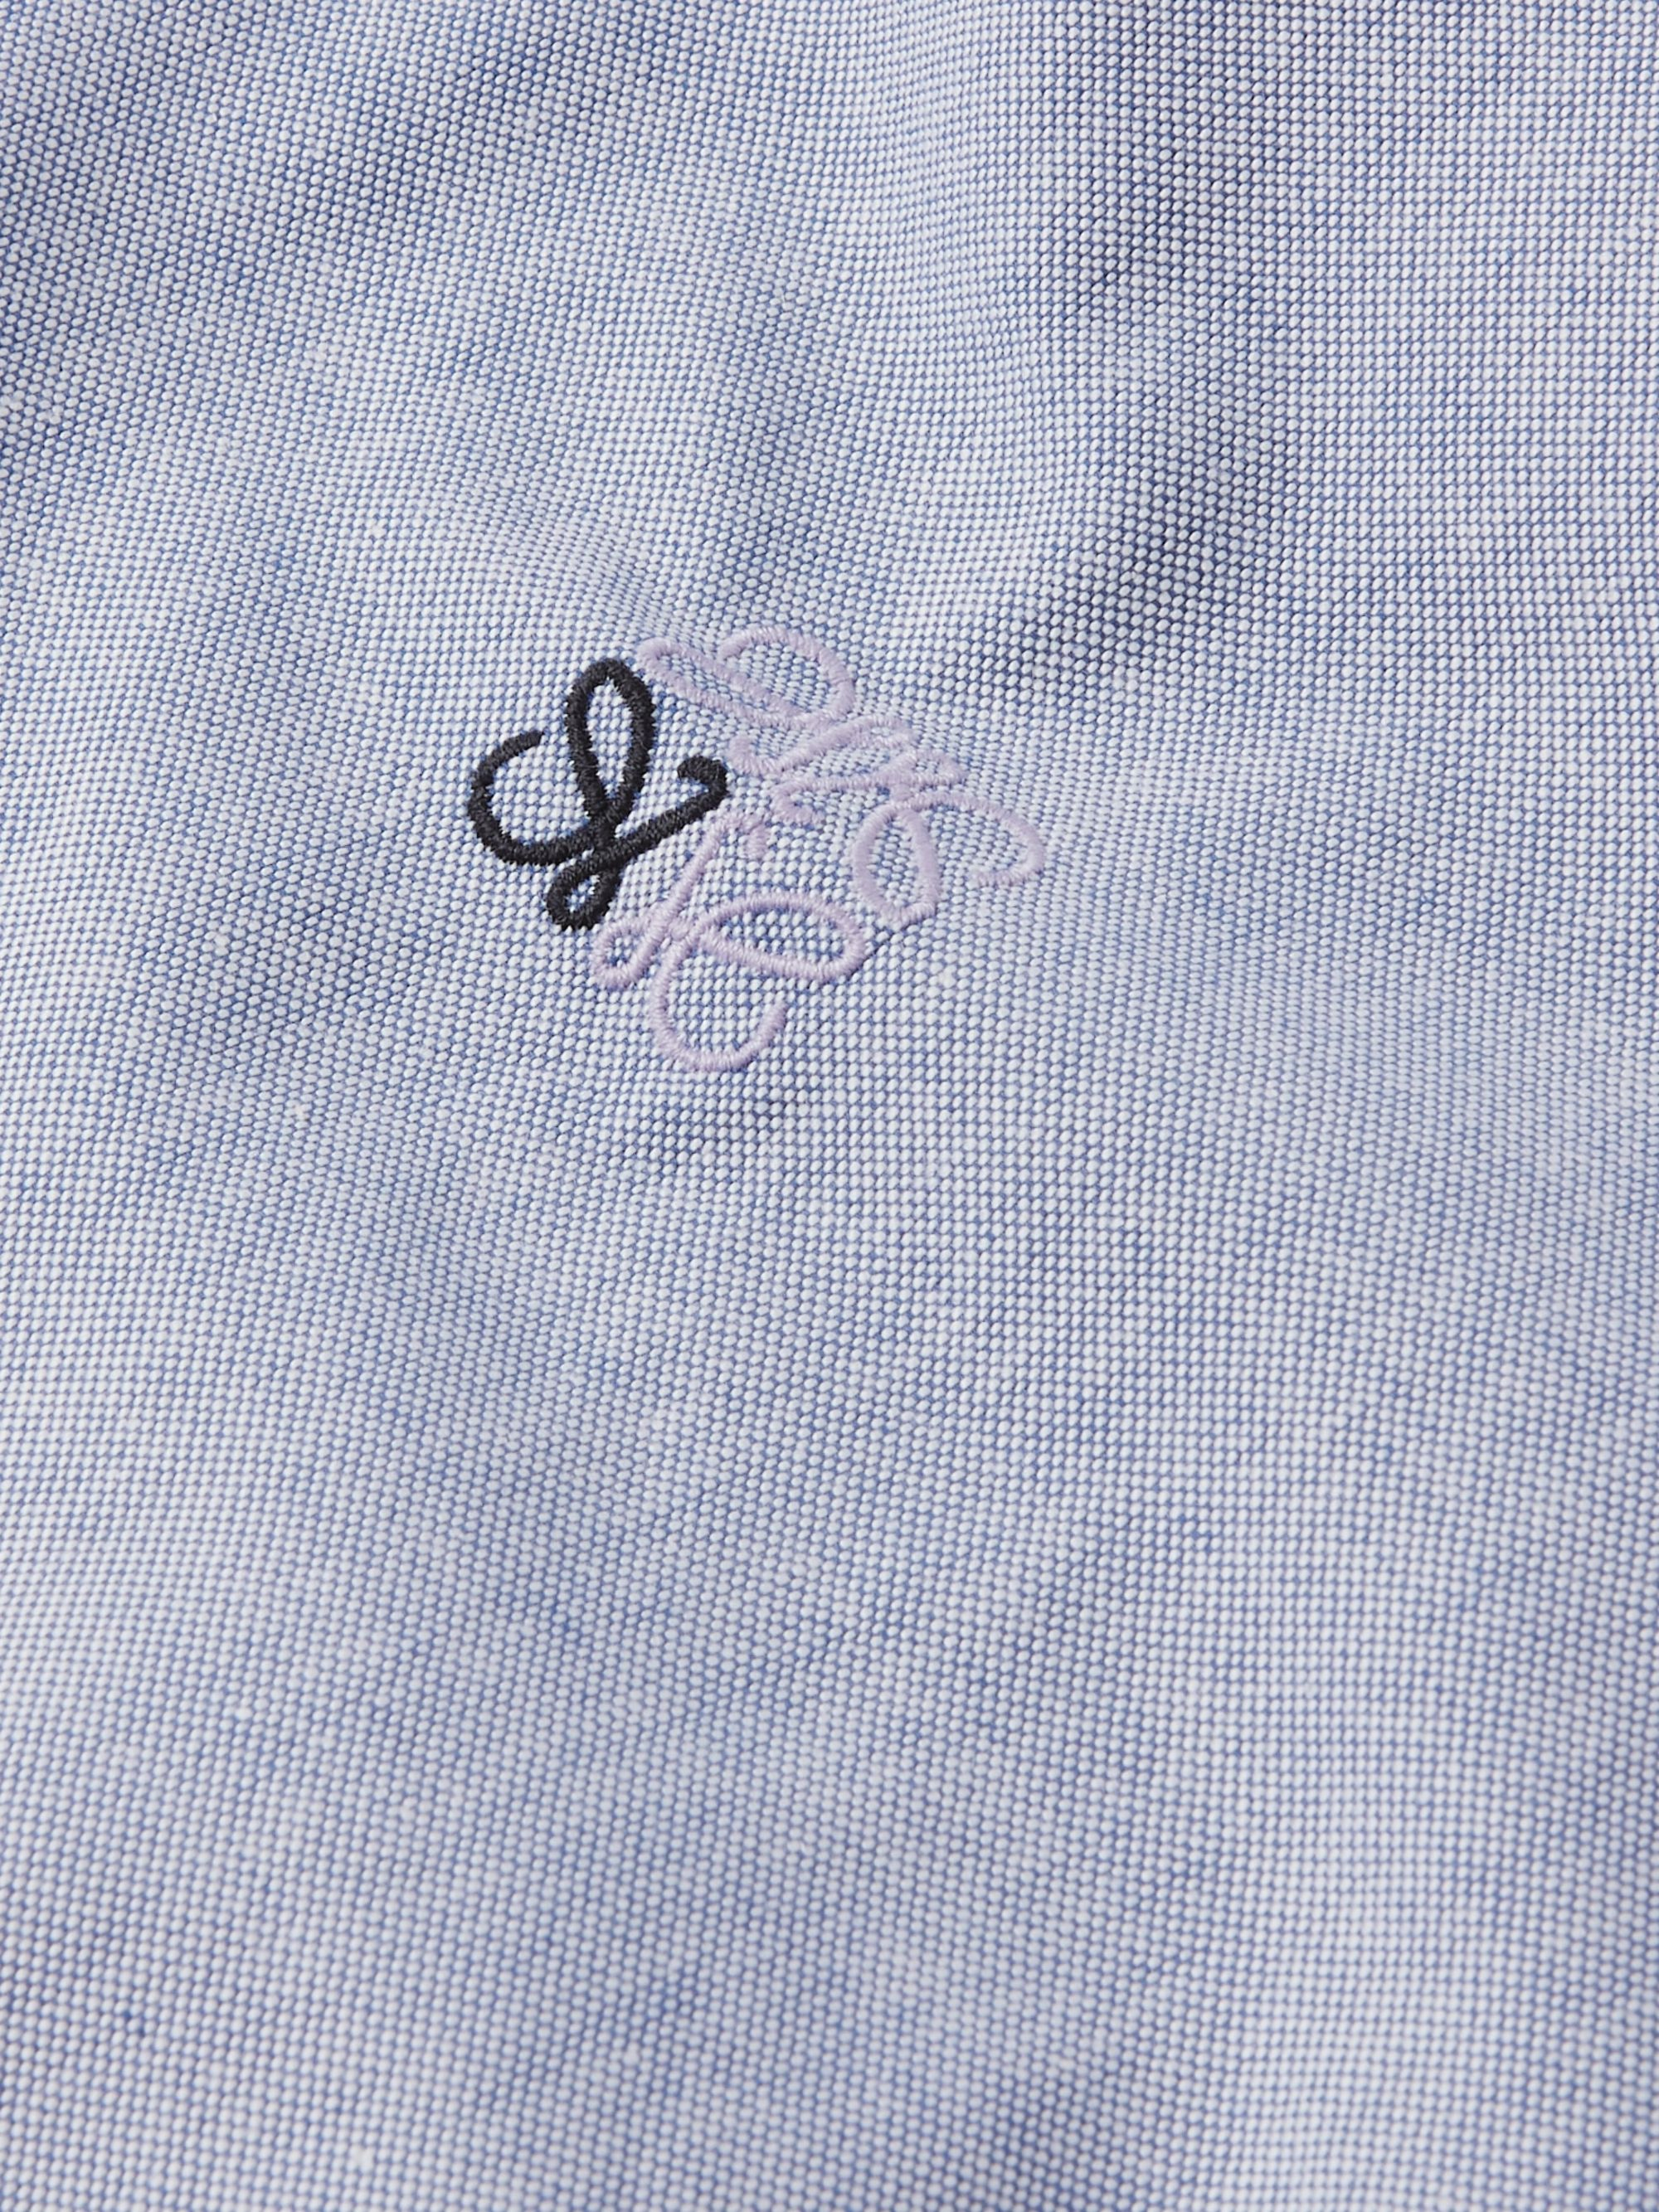 LOEWE Button-Down Collar Logo-Embroidered Cotton-Oxford Shirt